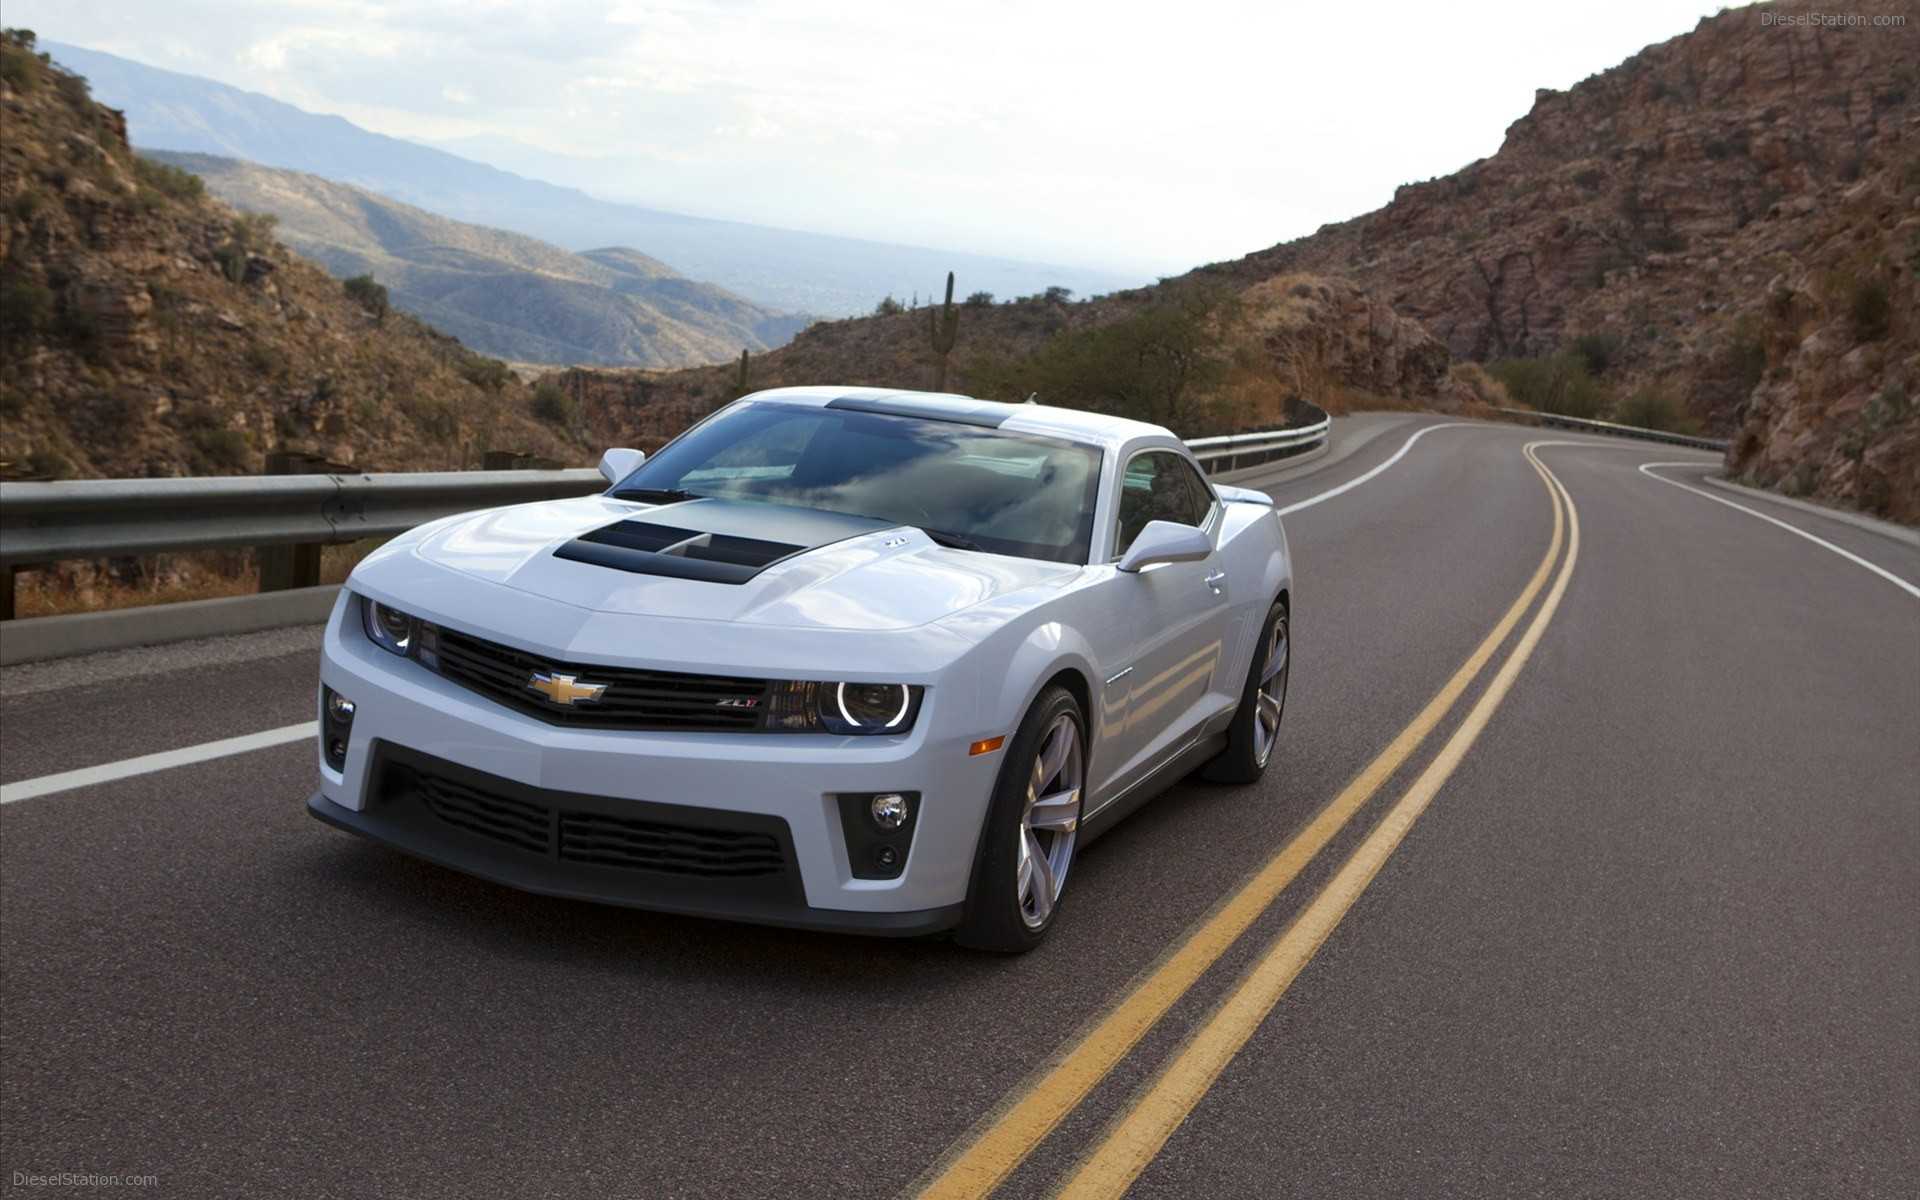 Chevrolet Camaro ZL1 2012 Widescreen Exotic Car Pictures 24 of 60 1920x1200